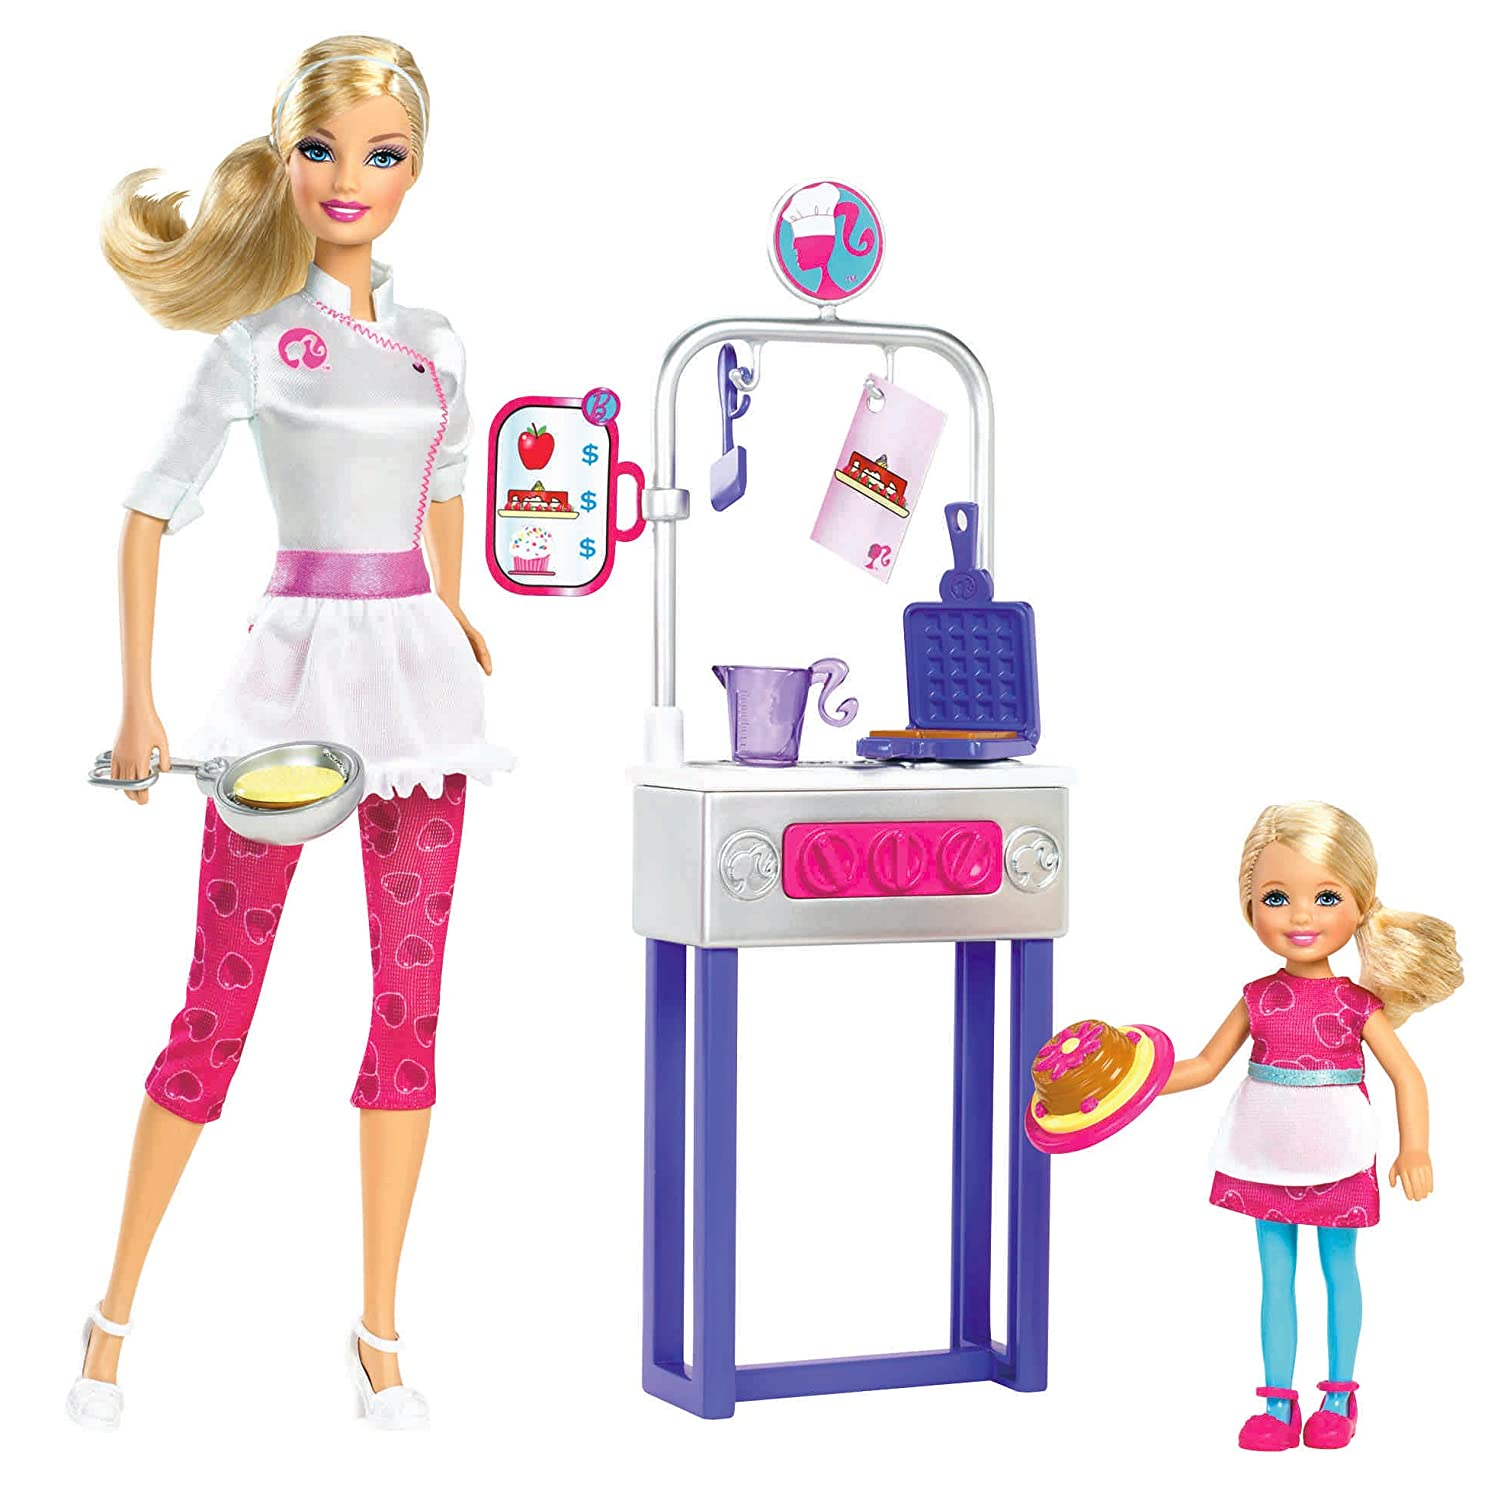 Amazon.com: Barbie I Can Be Pancake Chef Doll Playset: Toys & Games